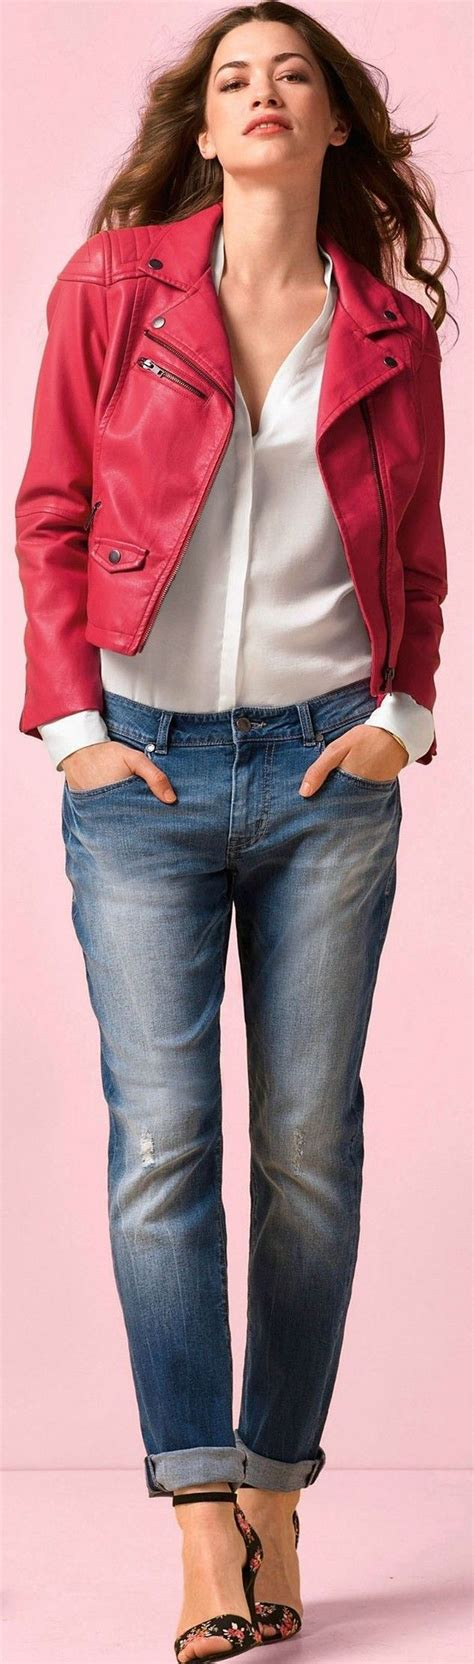 paris fashion for women over 50 casual travel outfits article http www boomerinas com